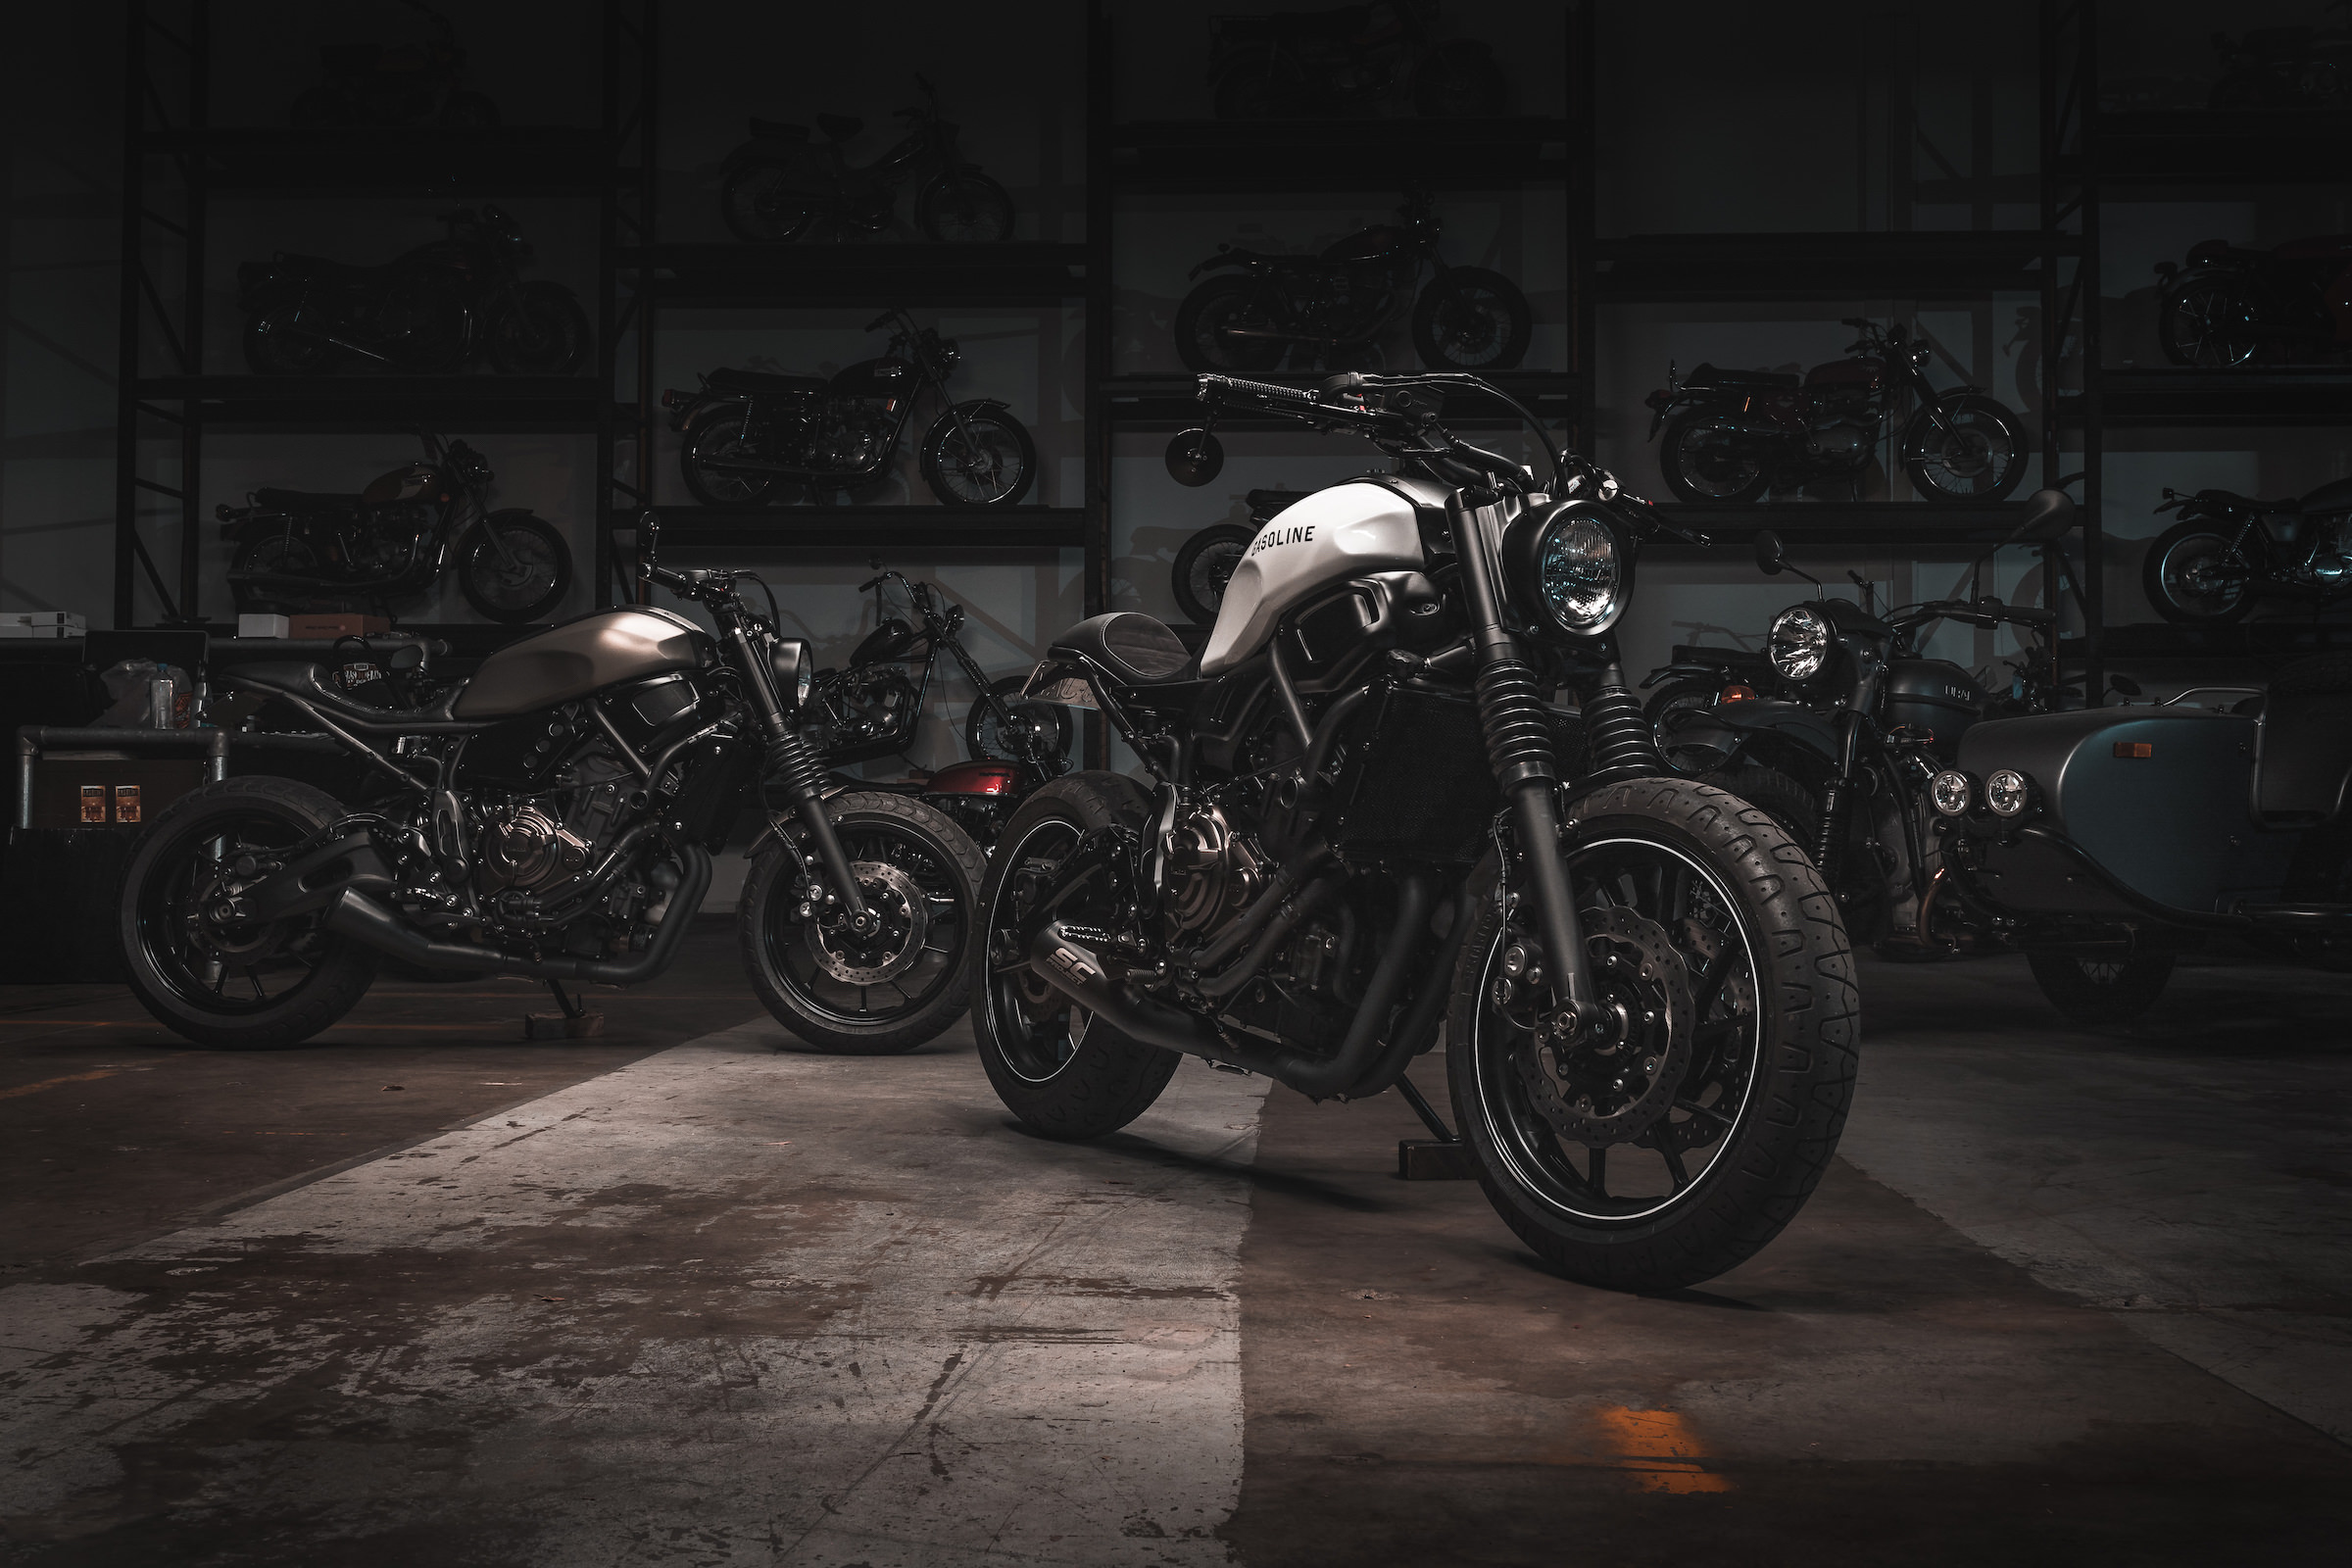 Yamaha Xsr 700 Twin Street Fighters By Gasoline Motor Co